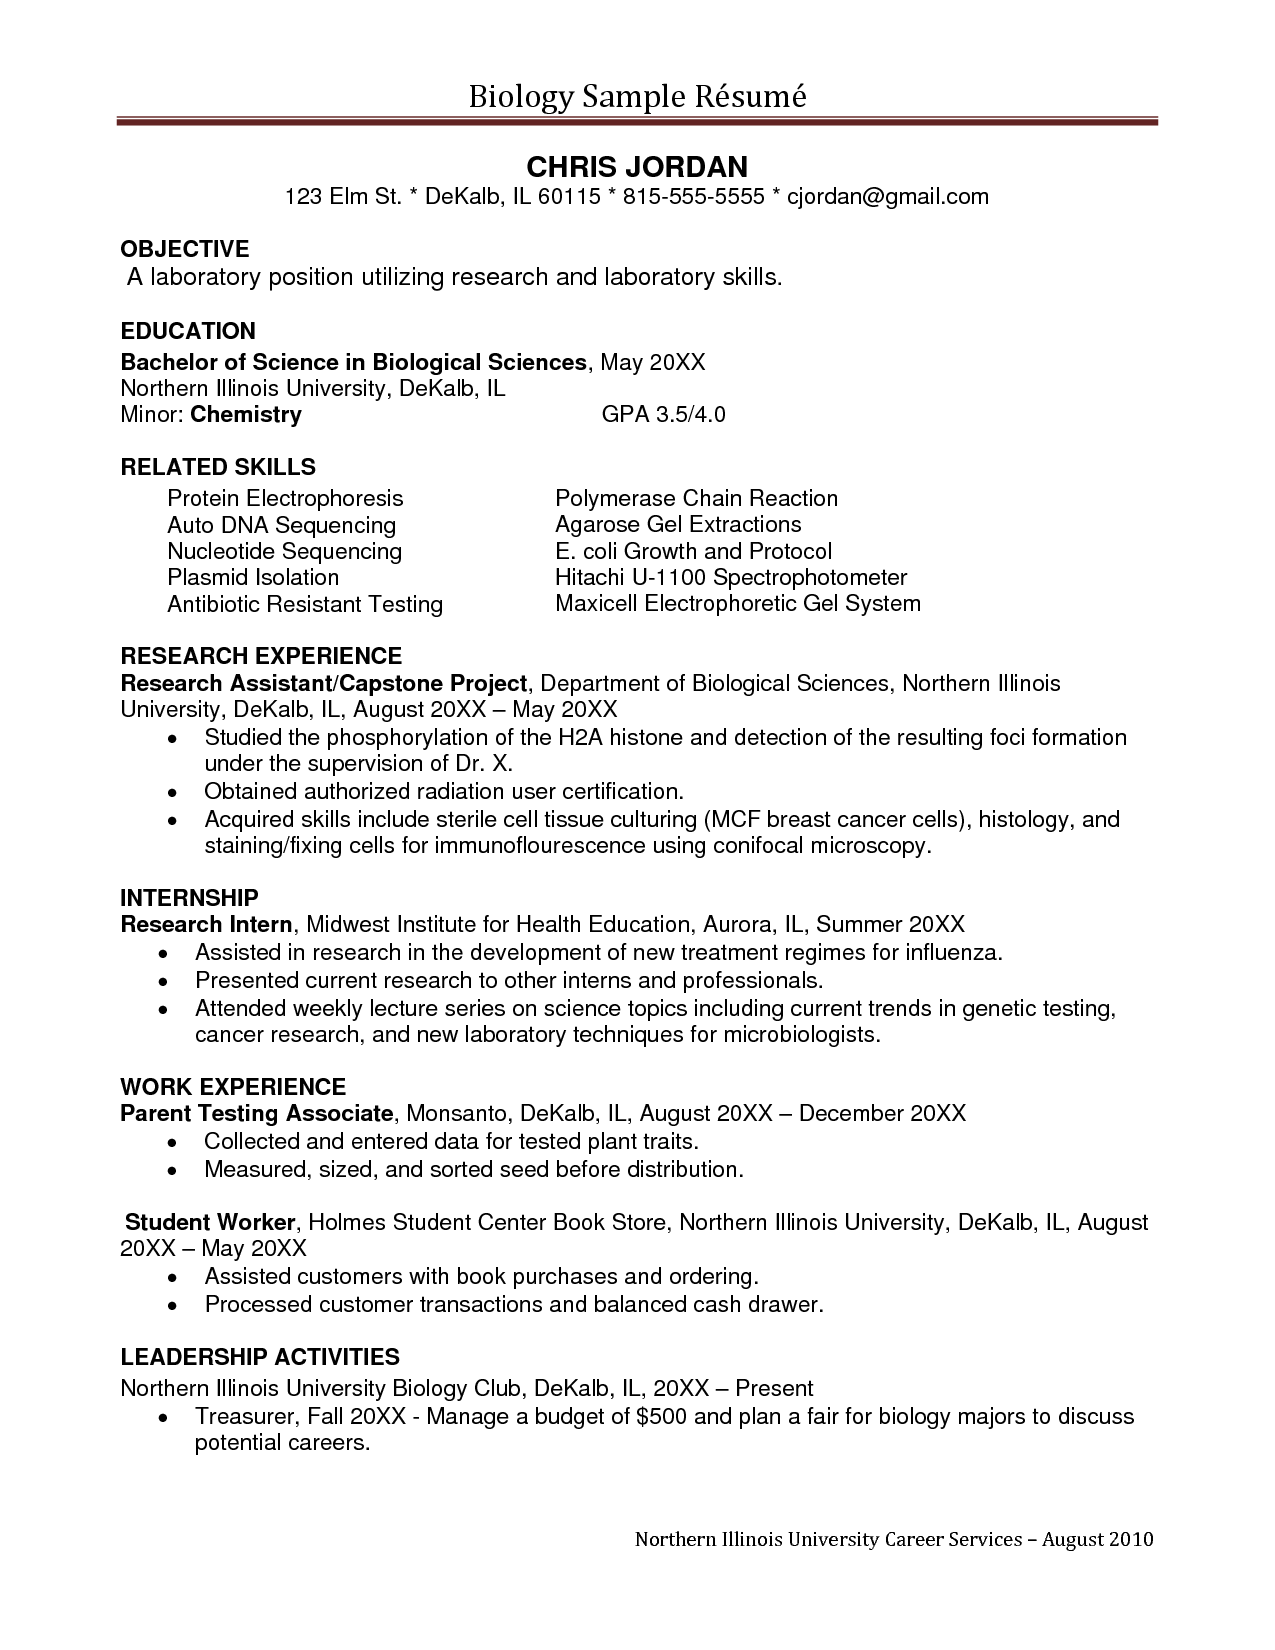 Sample Objective | Sample Undergraduate Research Assistant Resume Sample ĺ